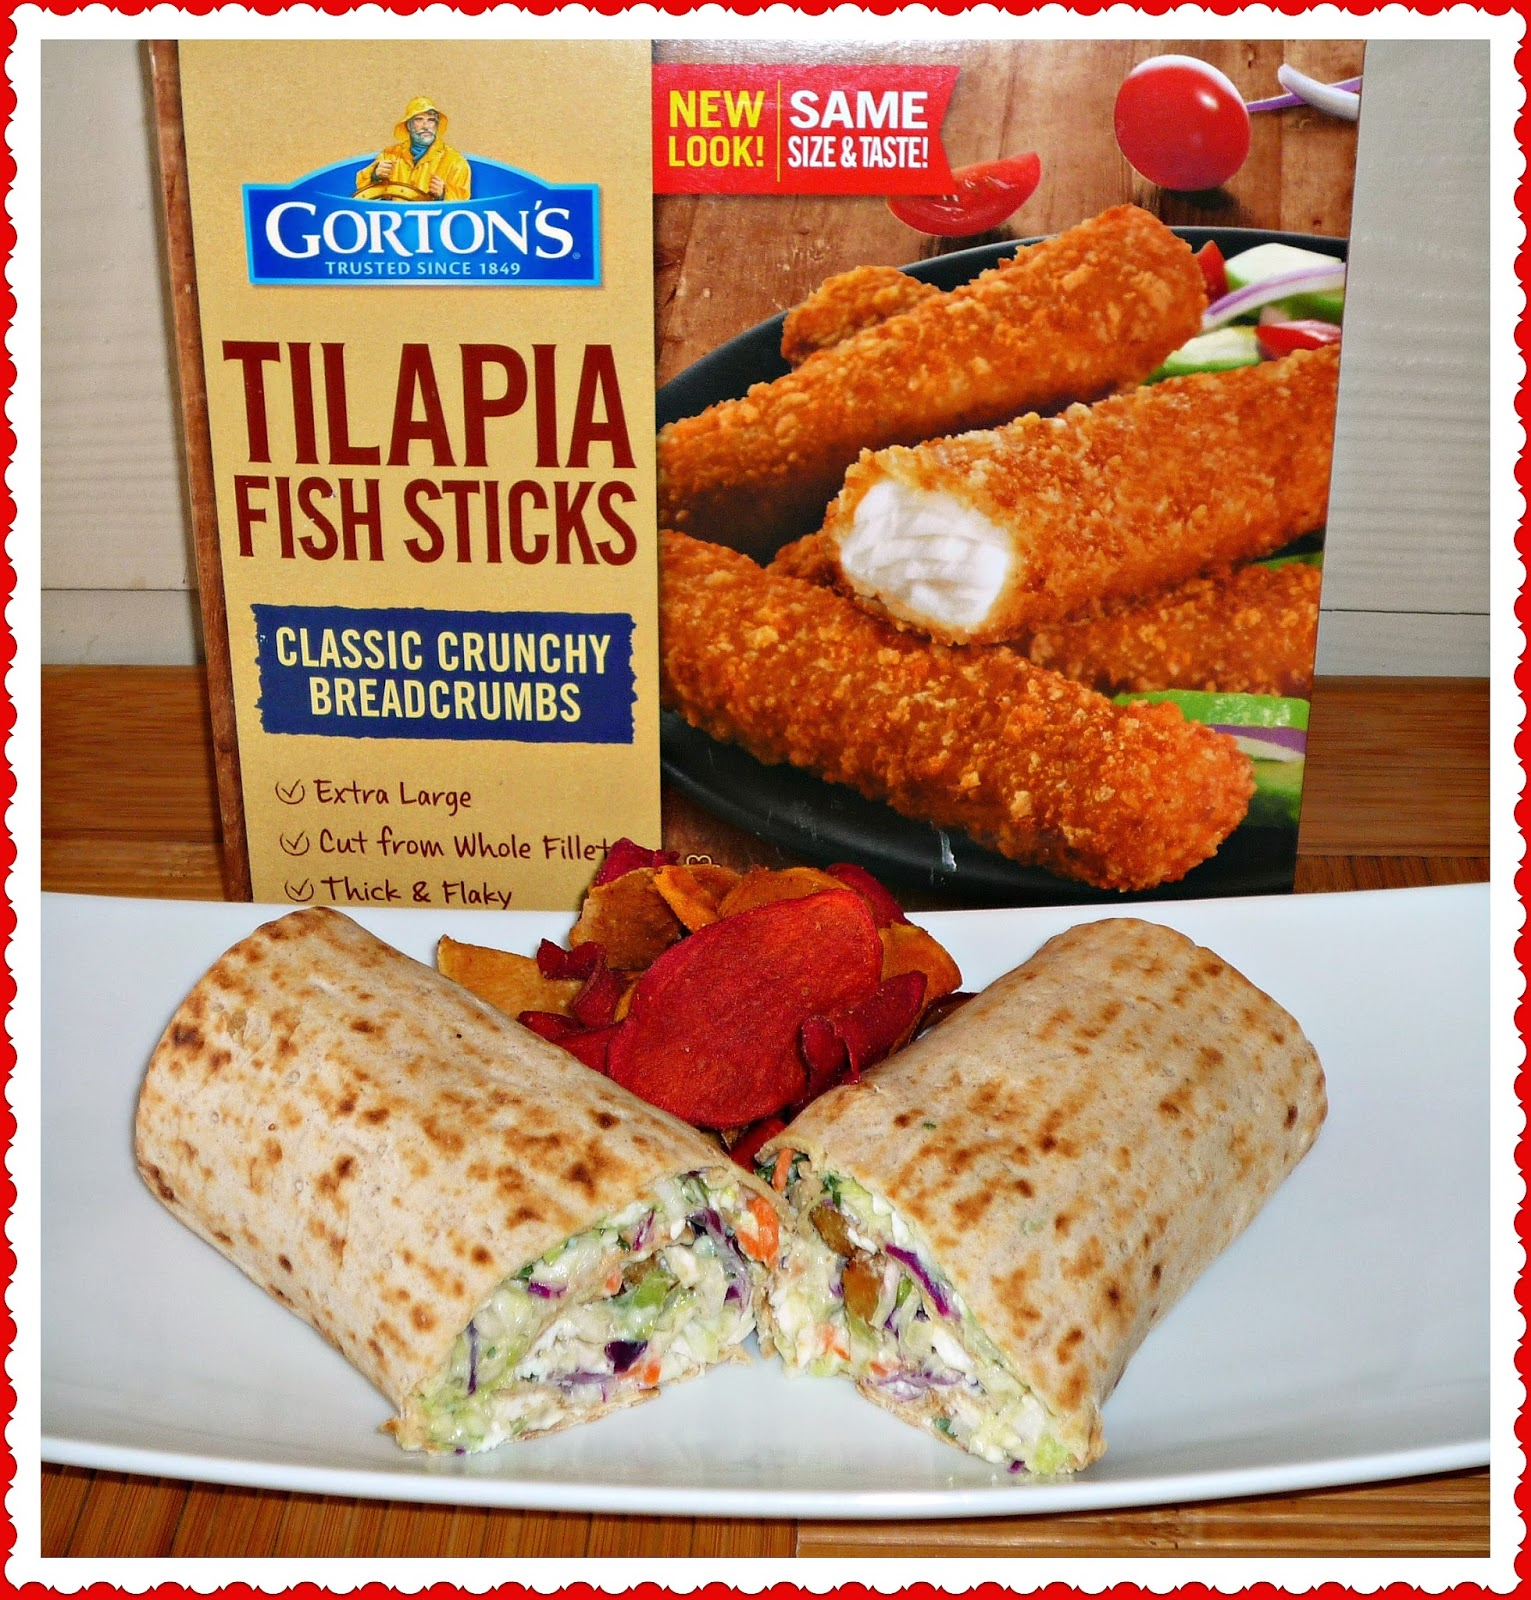 The weekend gourmet tilapia wrap sandwiches with feta for Tilapia fish sticks